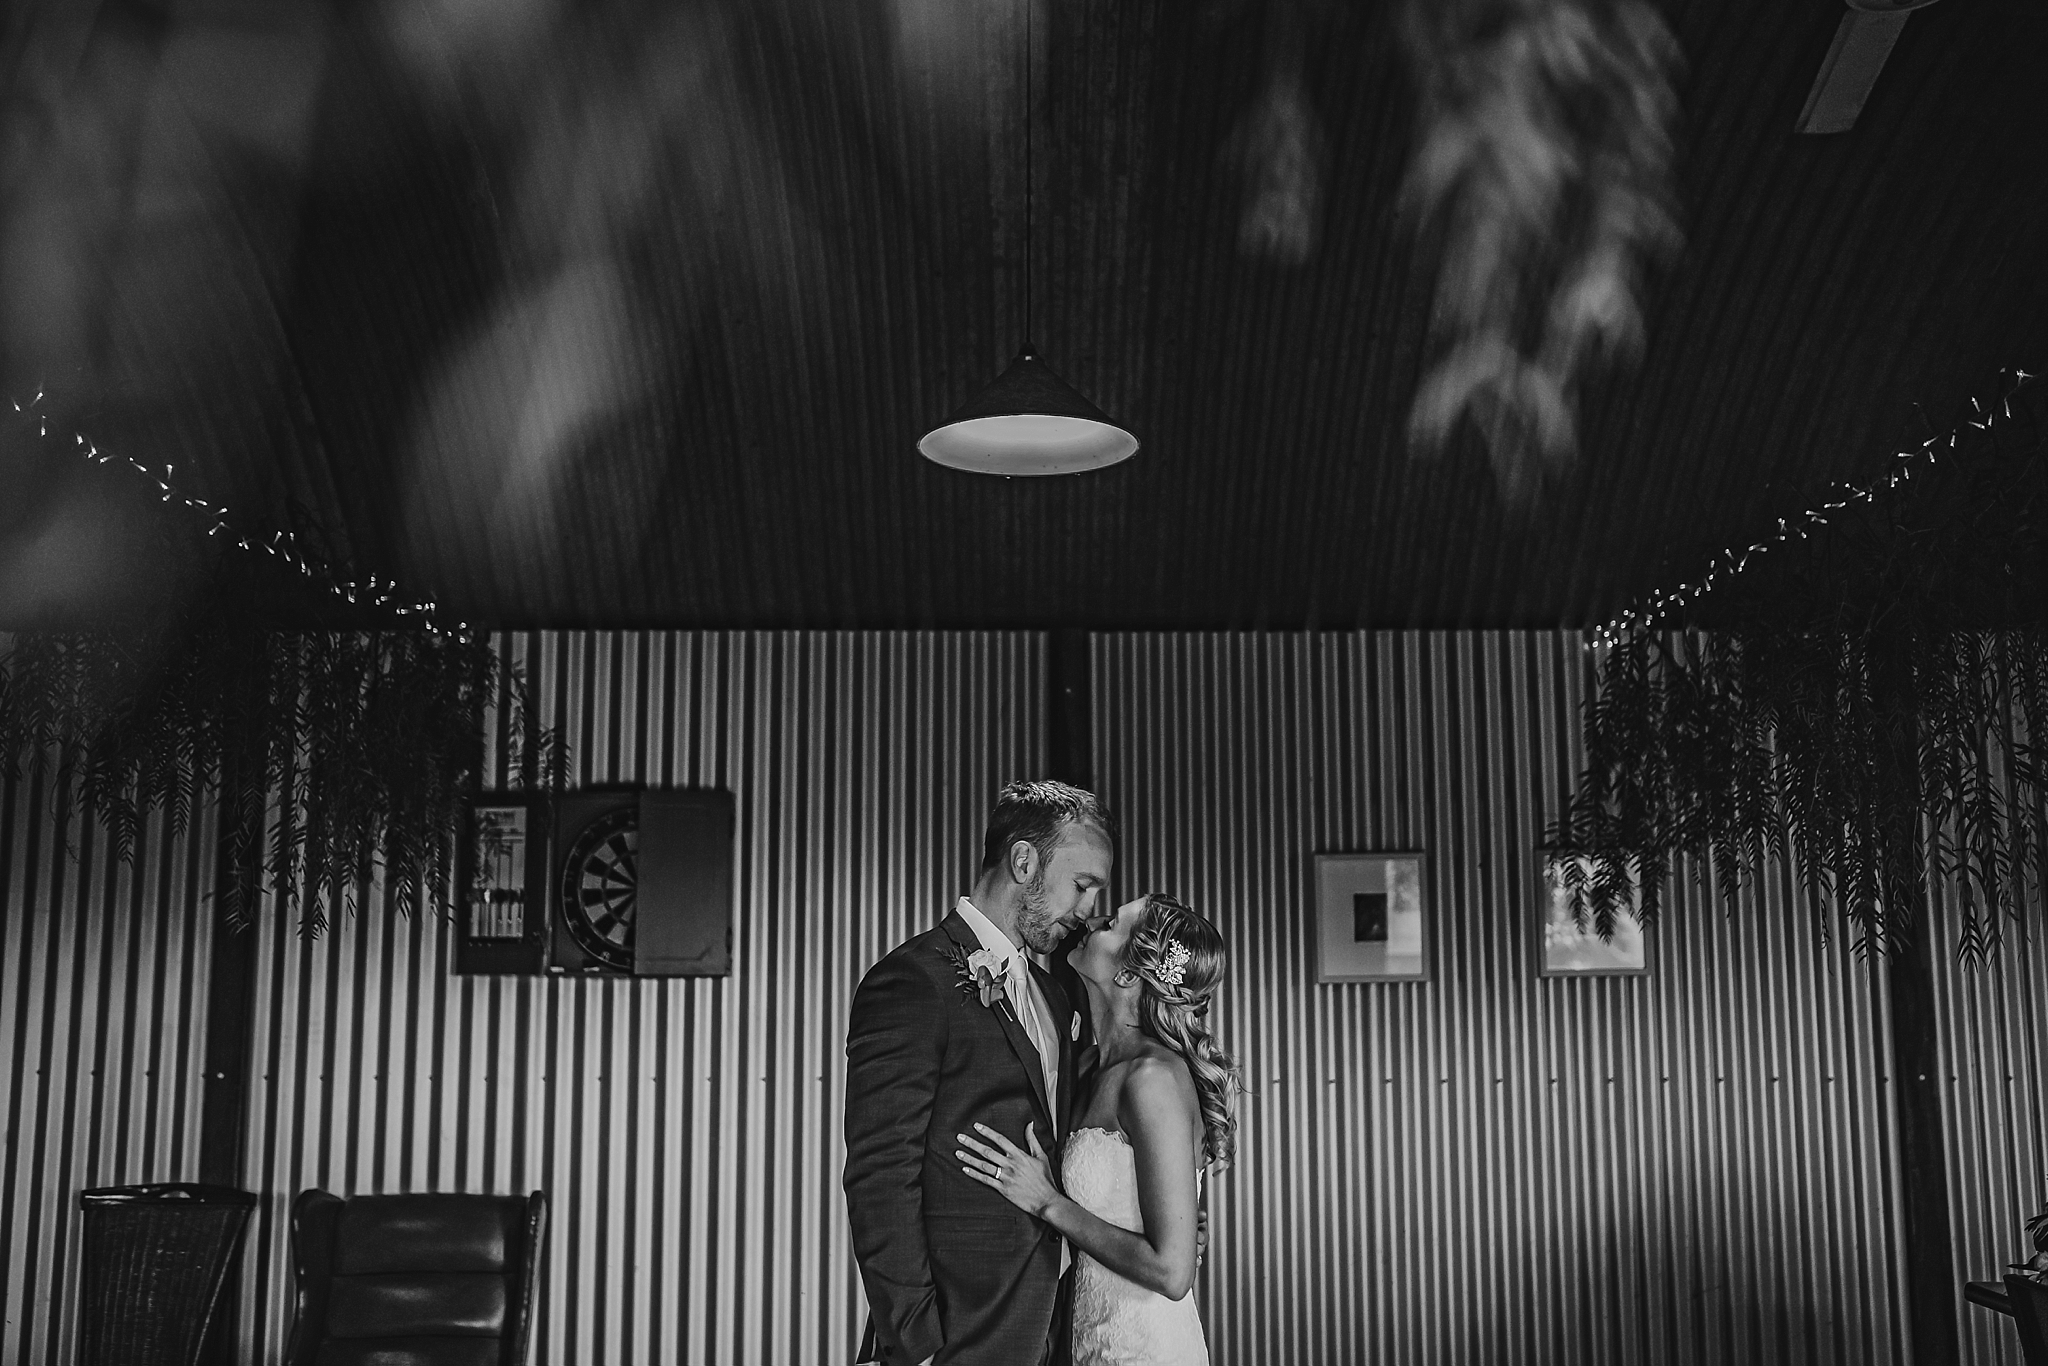 bride and groom in kissing pose